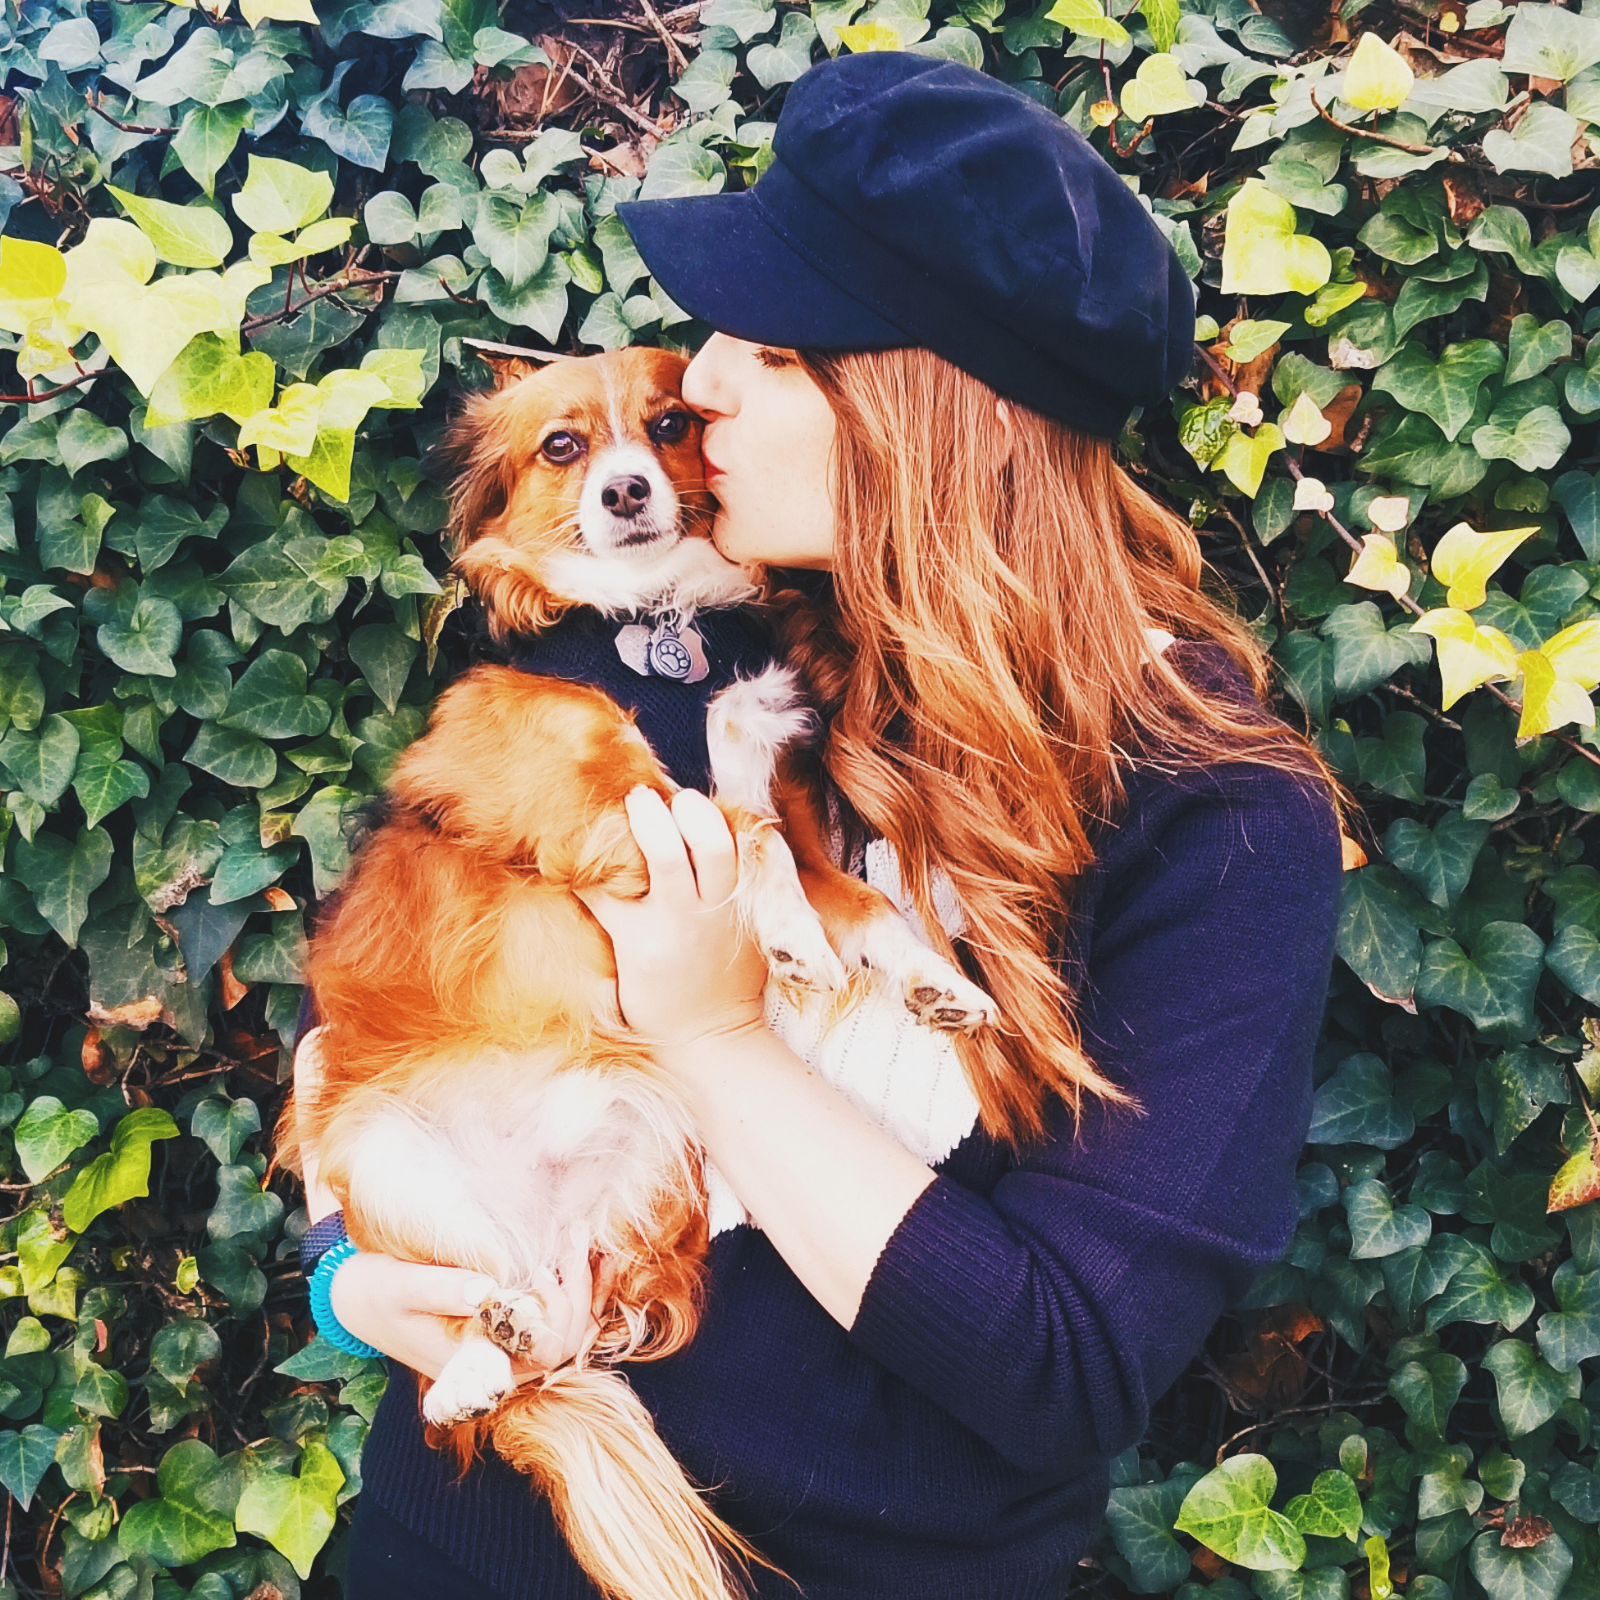 A girl kissing her dog